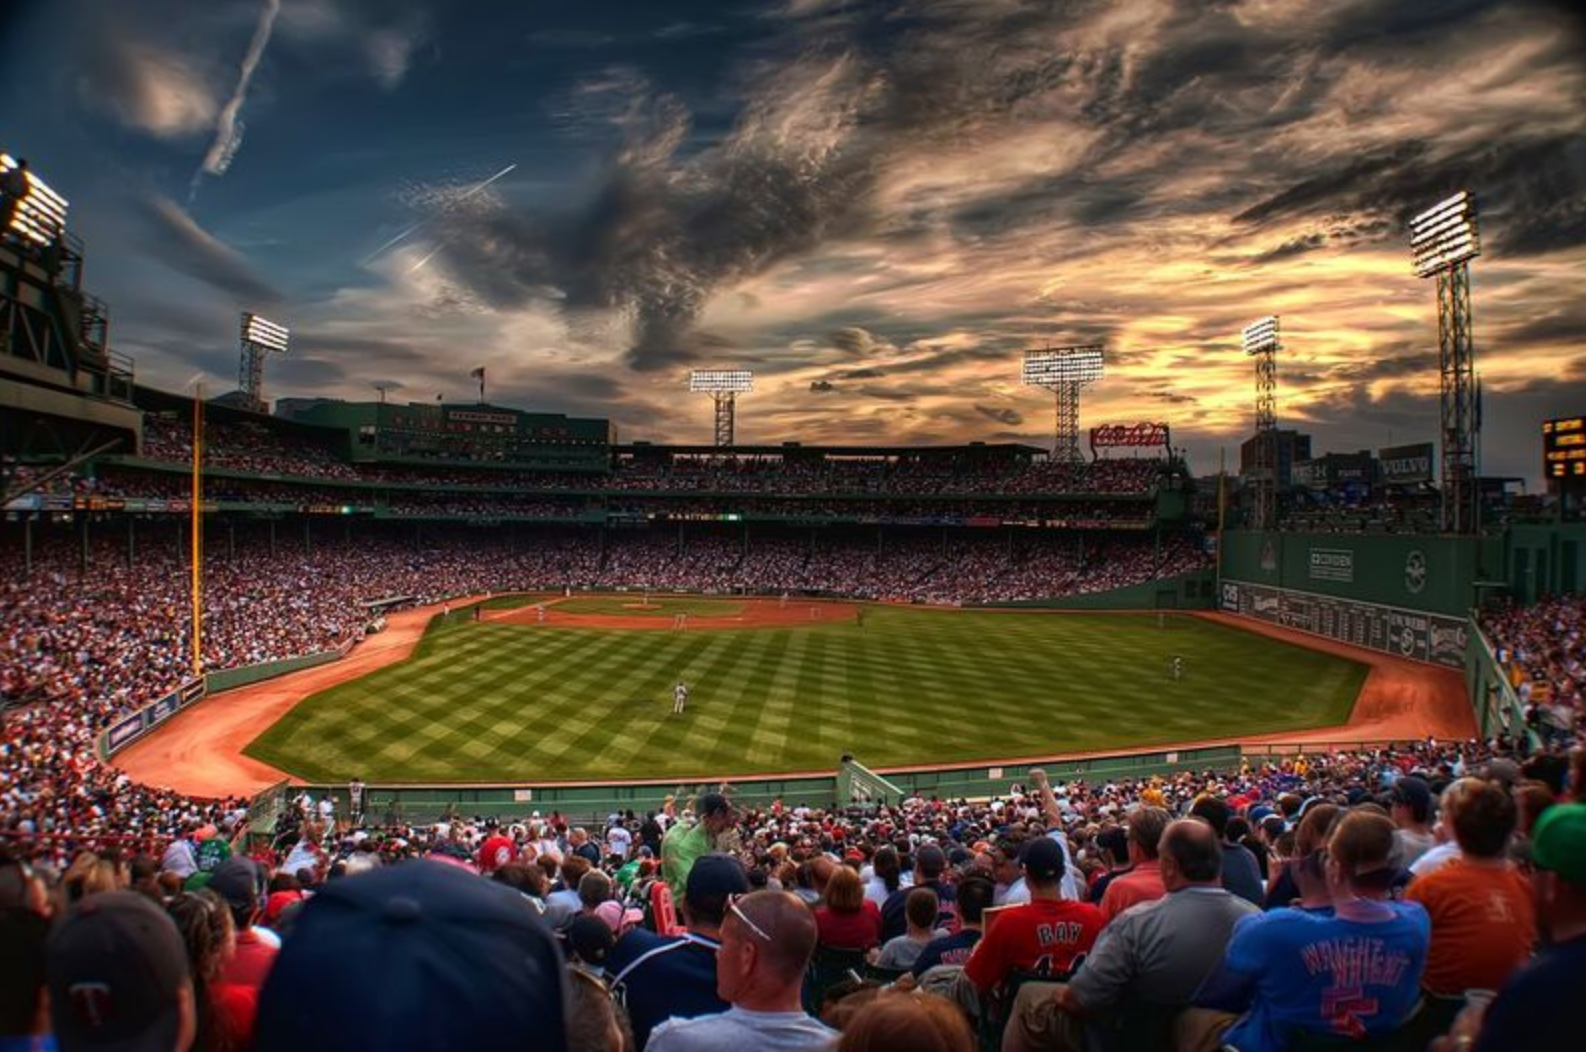 Las Vegas Gunman Researched Hotels Around Fenway Park and Booked Hotel Overlooking Lollapalooza in Chicago